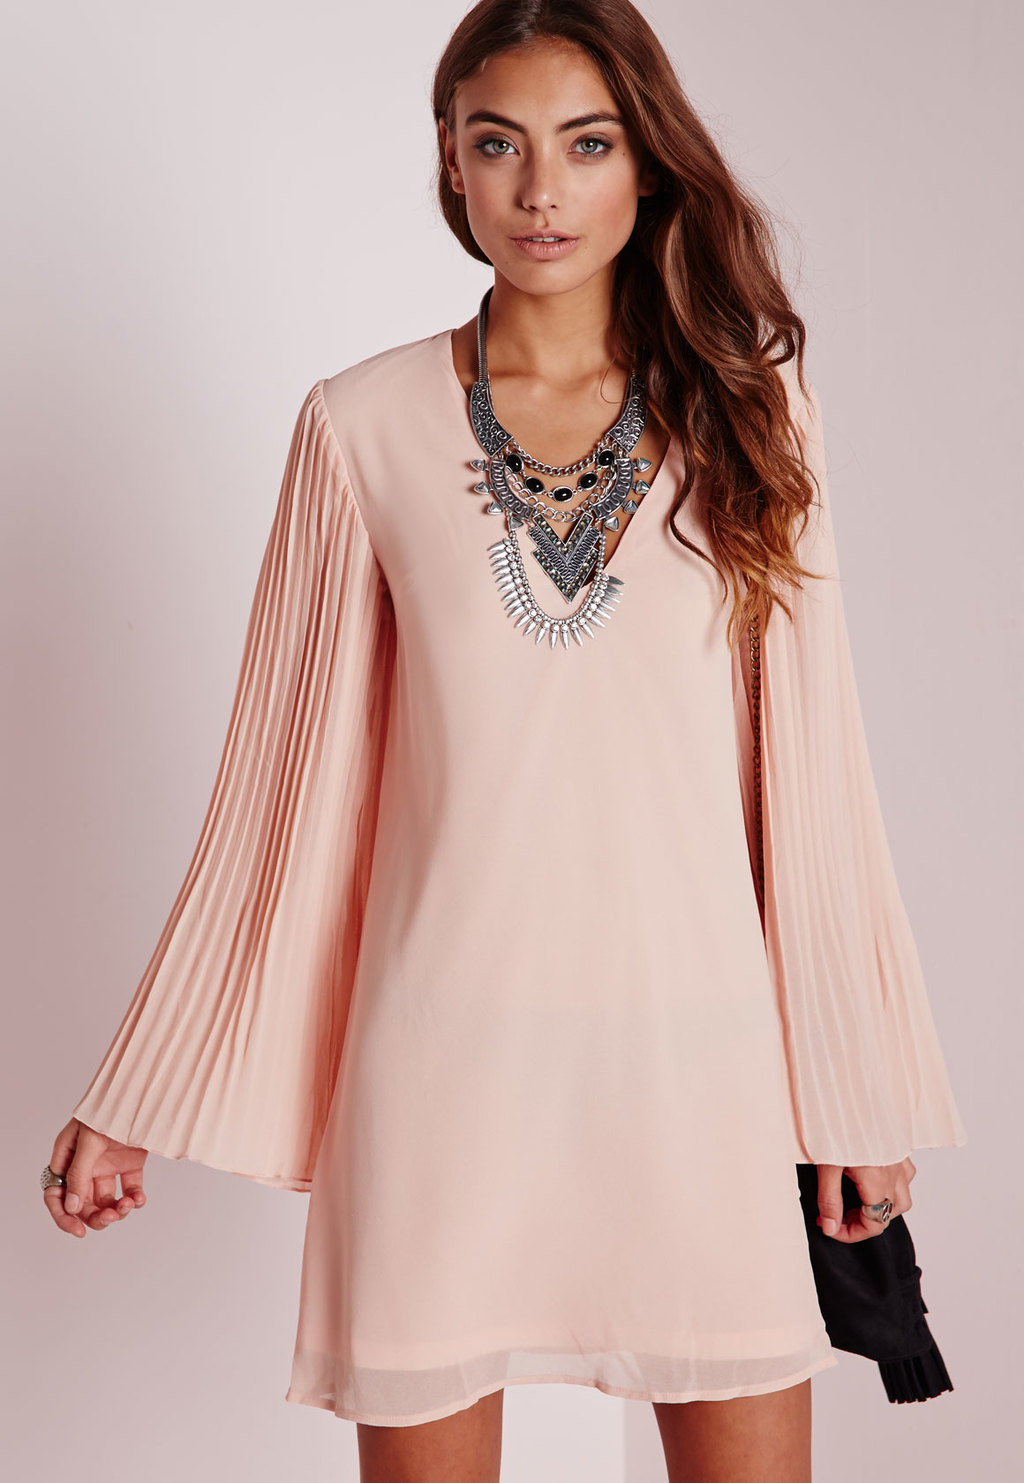 Pleated Sleeve Swing Dress Nude, Beige - style: shift; length: mid thigh; neckline: low v-neck; pattern: plain; sleeve style: trumpet; predominant colour: blush; occasions: evening, occasion; fit: soft a-line; sleeve length: long sleeve; texture group: sheer fabrics/chiffon/organza etc.; pattern type: fabric; season: a/w 2015; wardrobe: event